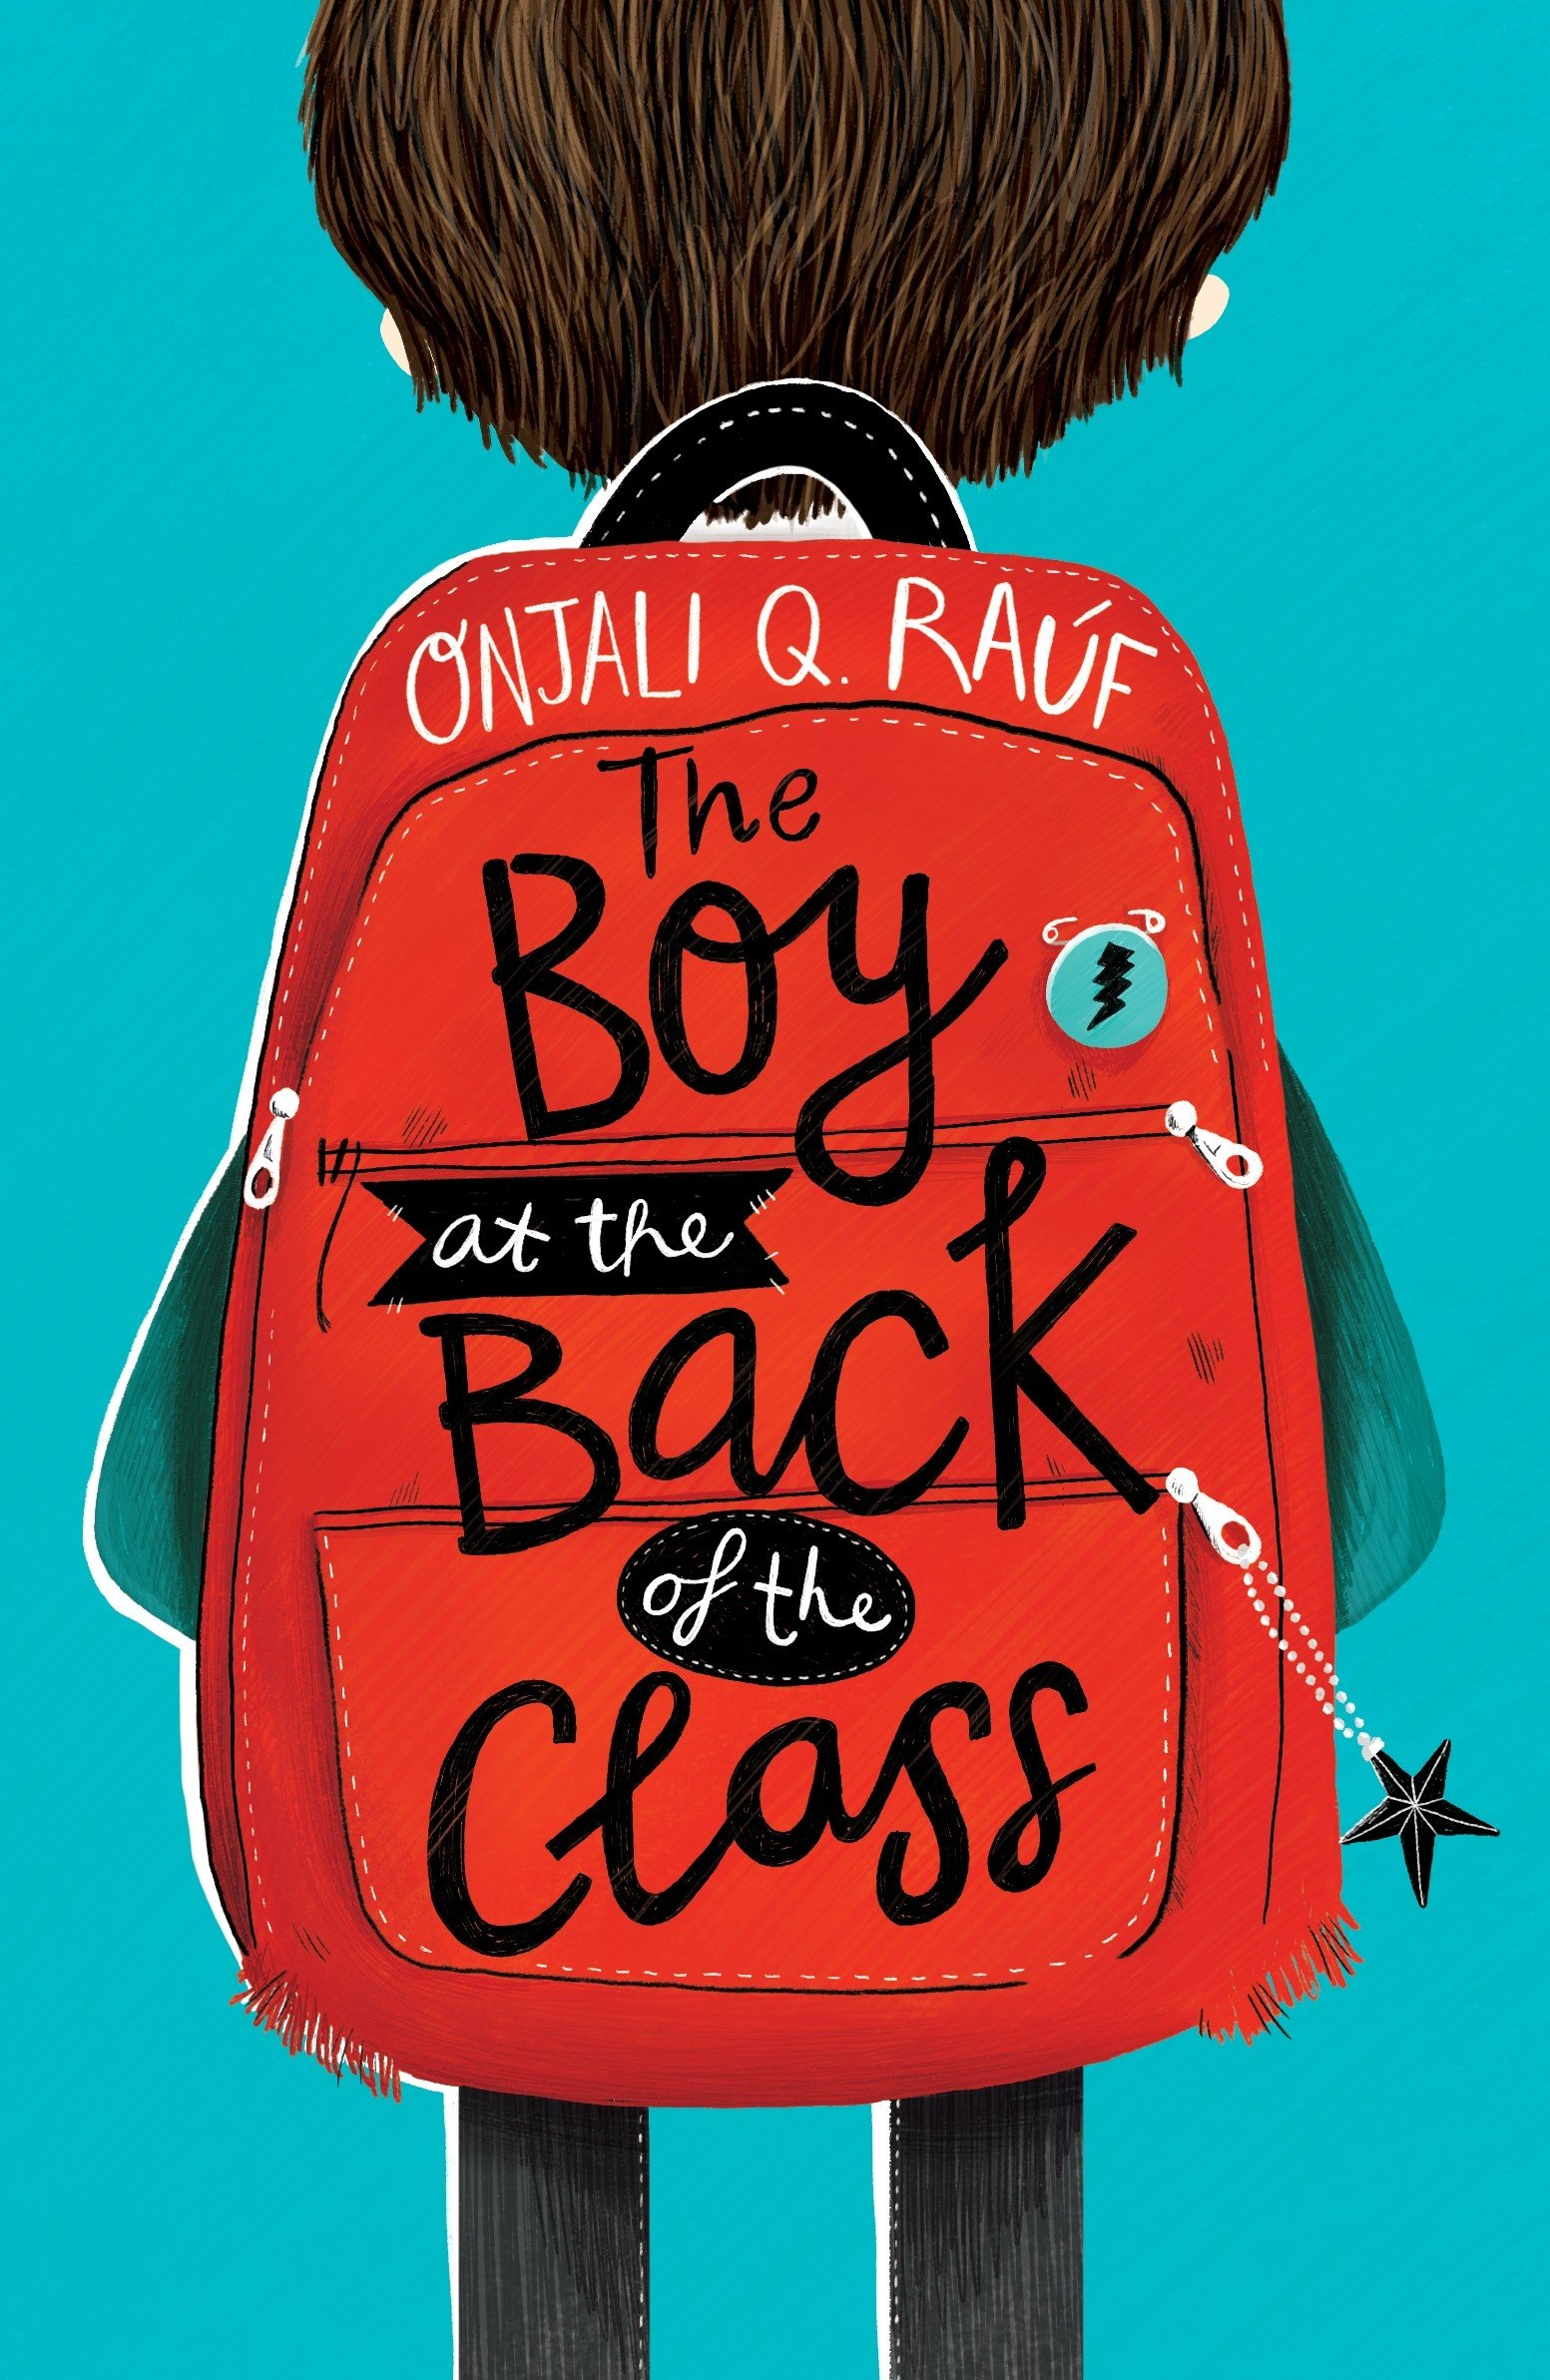 The Boy at the Back of the Class is published by Orion Children's Books